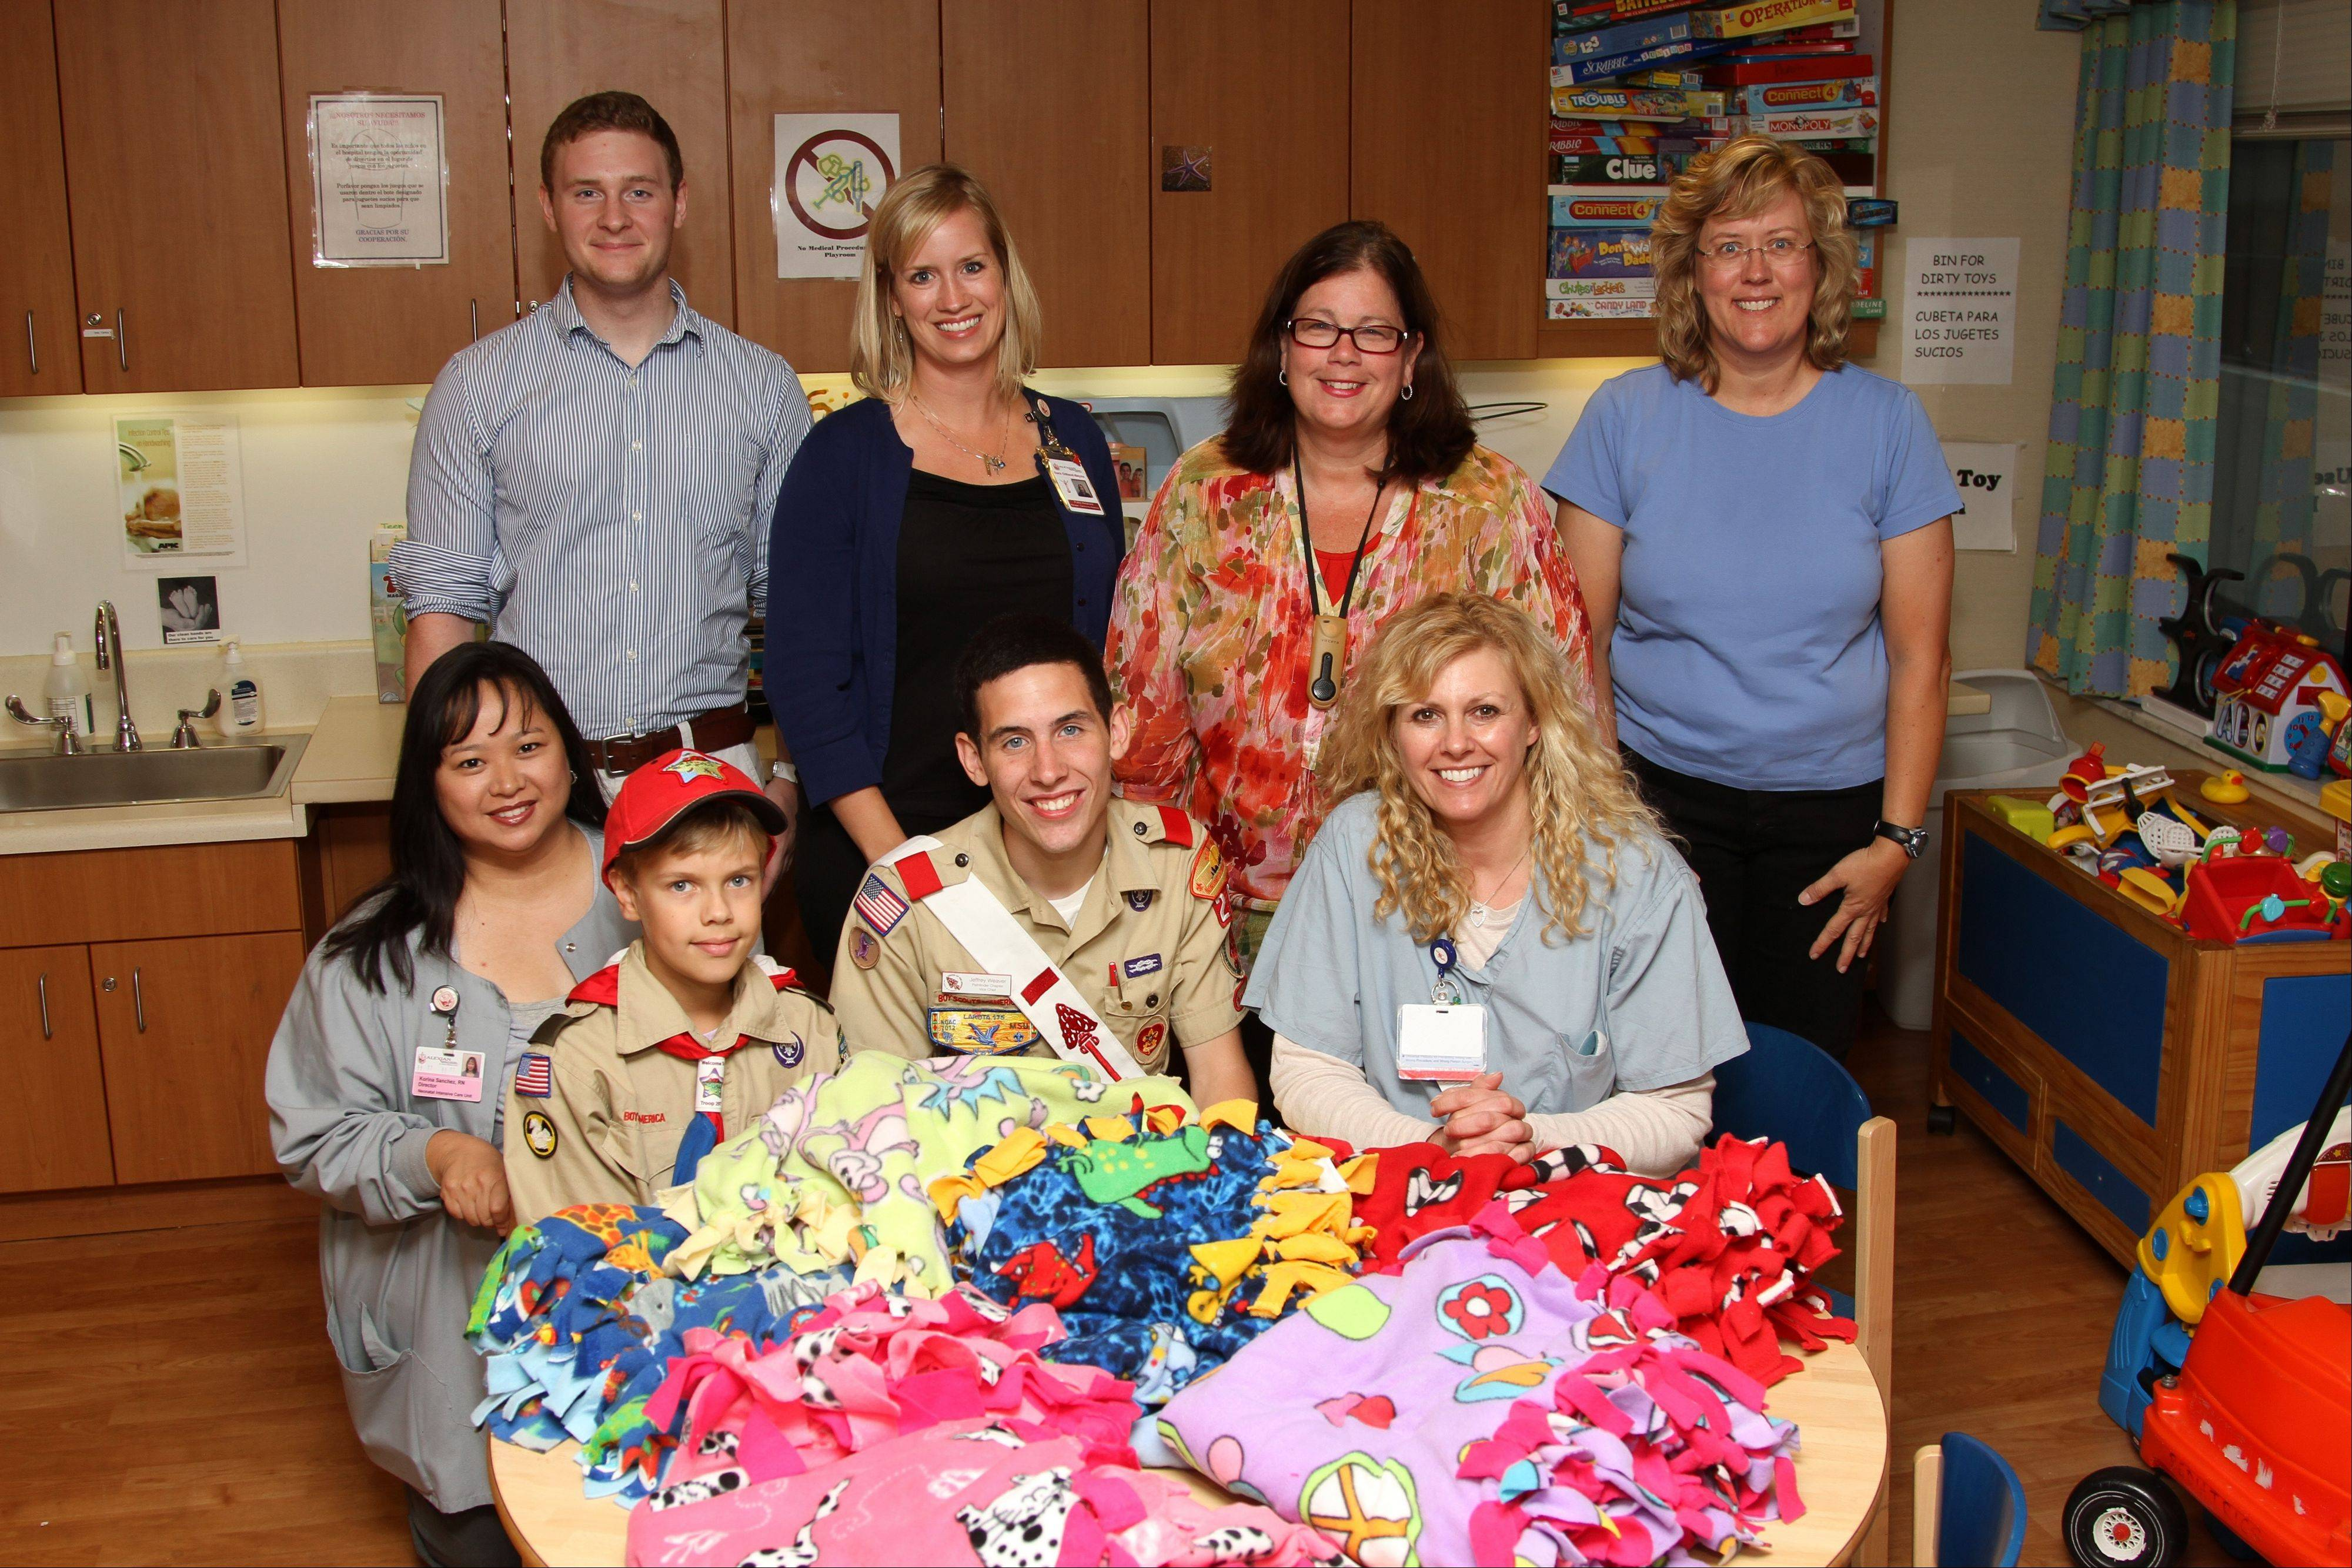 Eagle Scout candidate Jeffery Weaver and a fellow Boy Scout present homemade fleece blankets to the Pediatric Unit staff at St. Alexius Medical Center in Hoffman Estates.